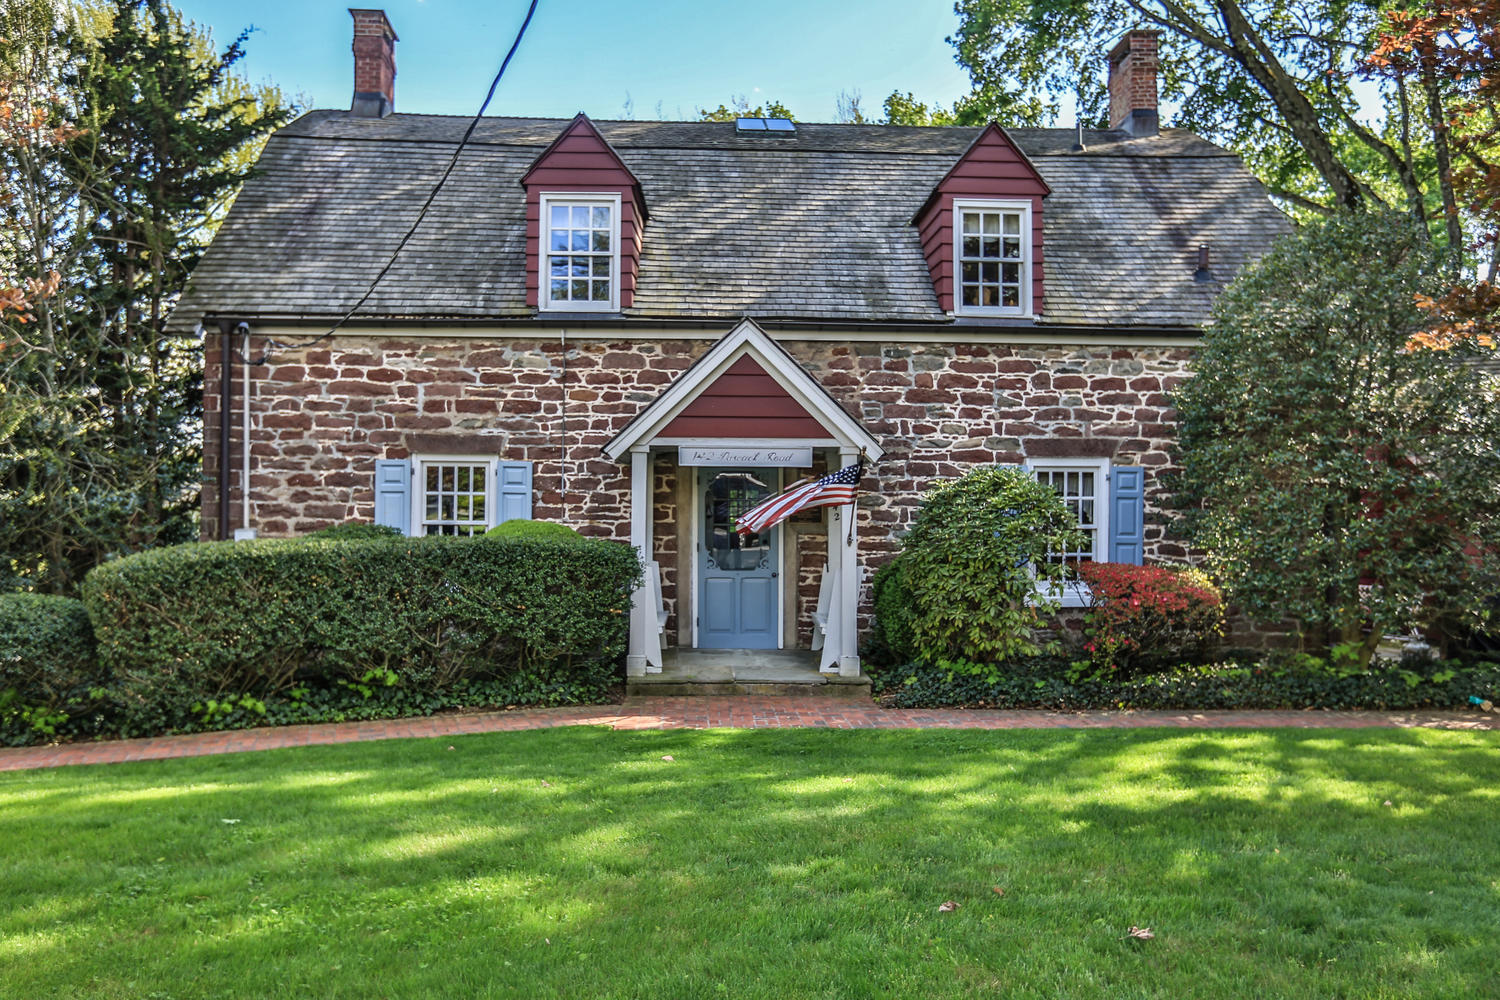 Sandstone dutch colonial for sale in park ridge for Dutch colonial house for sale